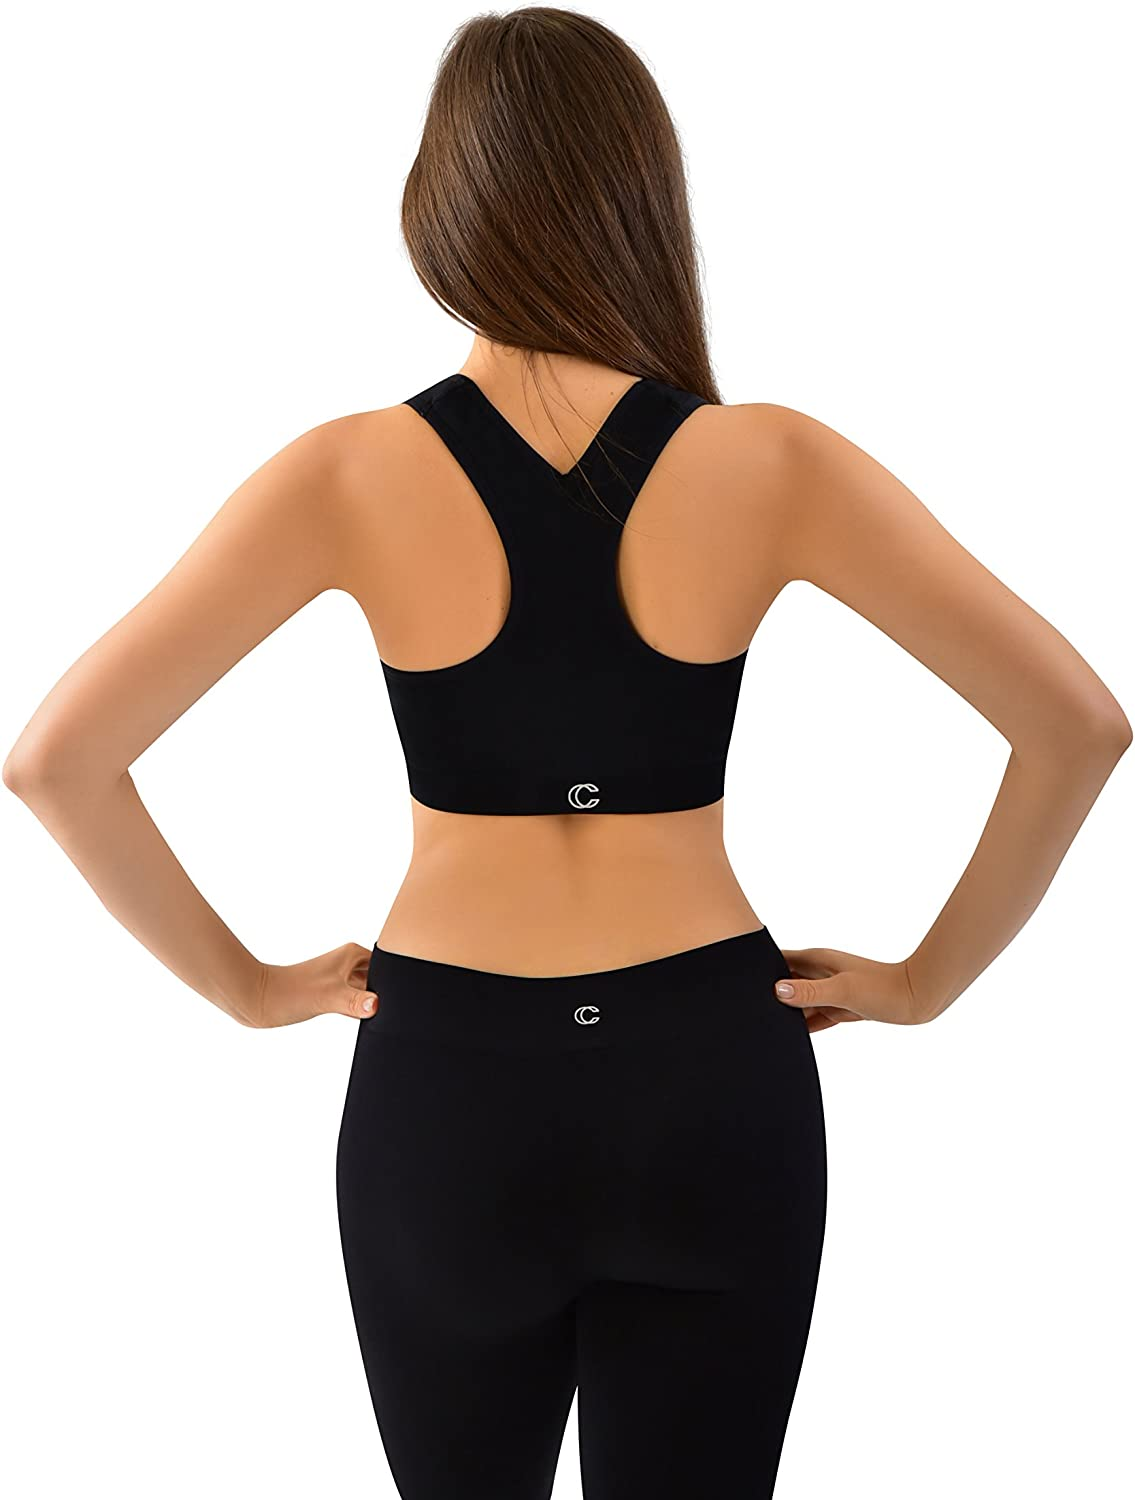 Yoga Vest Racerback Its an Avocado Thanks Support High Sport with Running